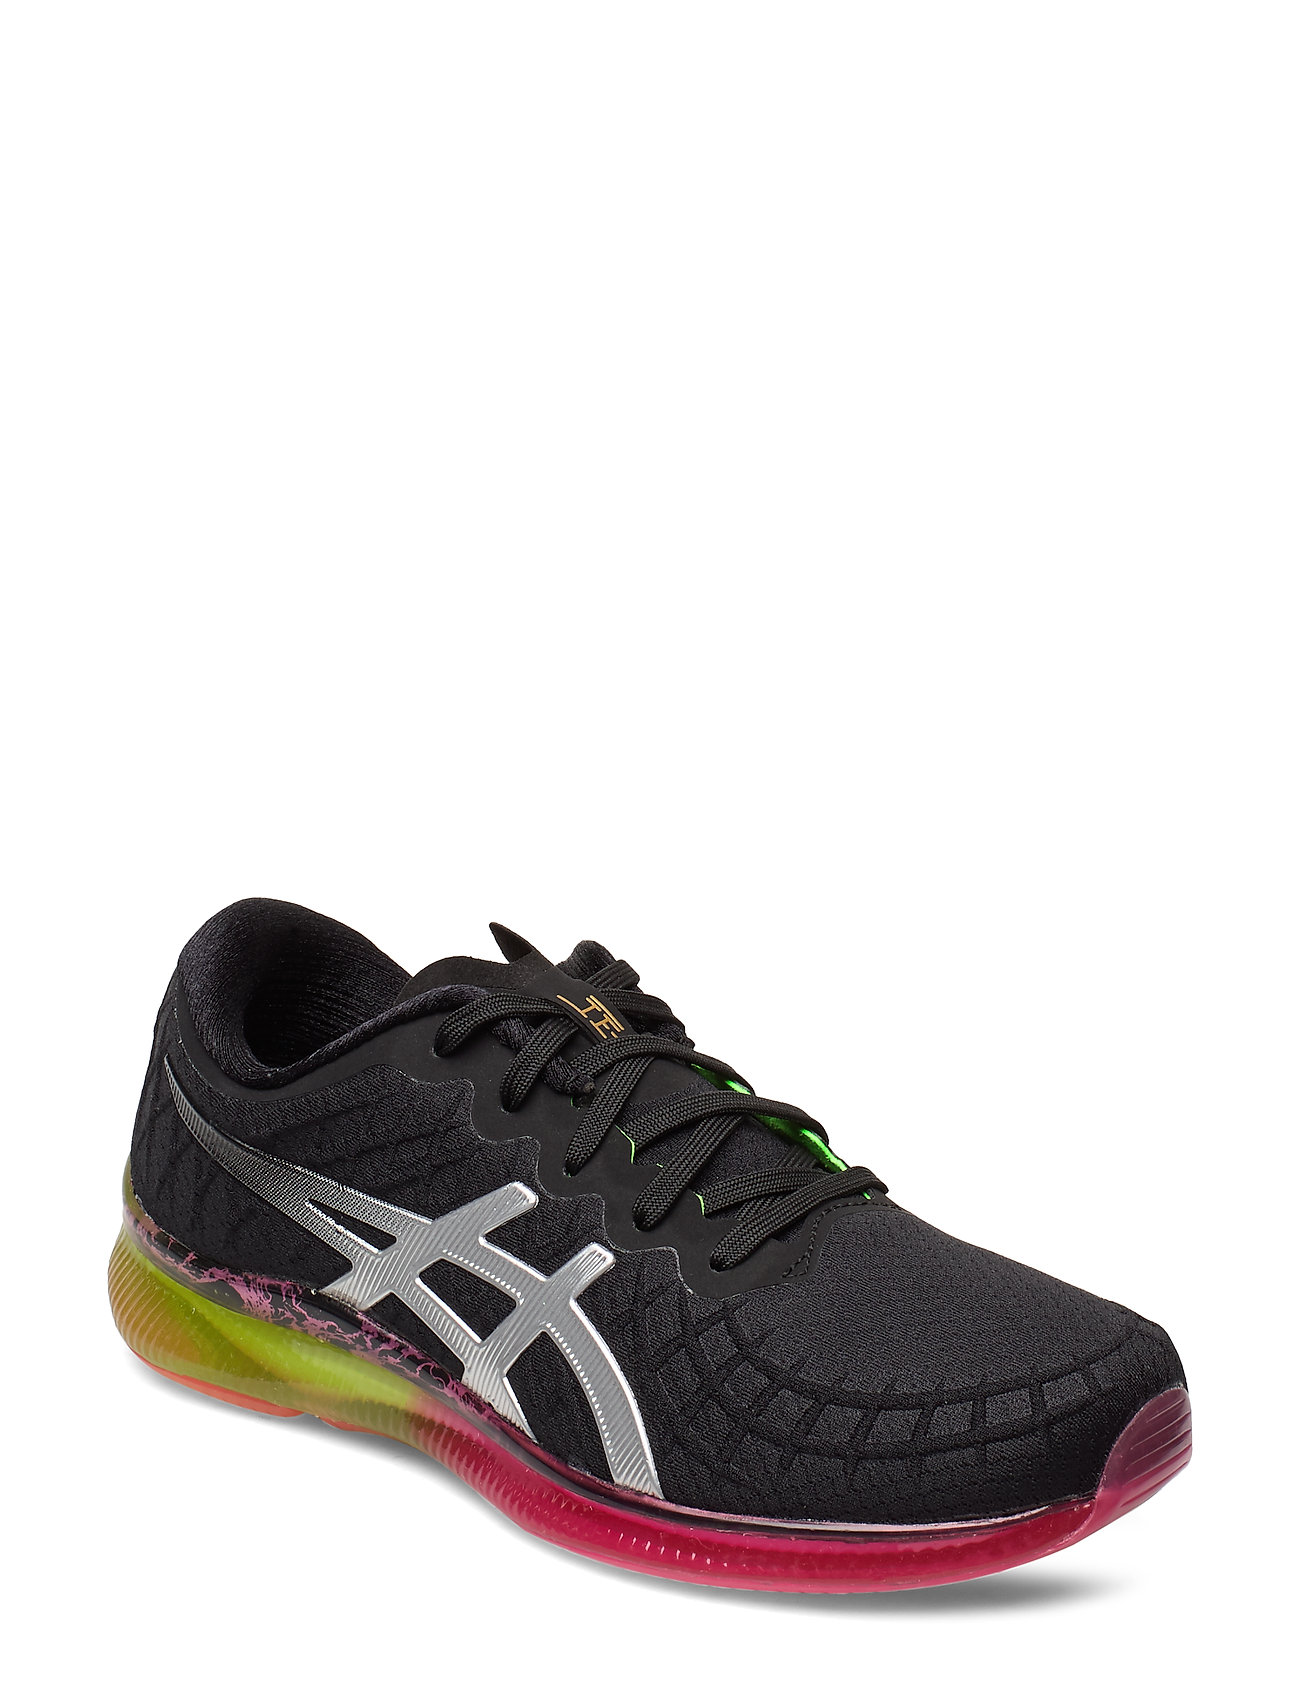 Image of Gel-Quantum Infinity Shoes Sport Shoes Running Shoes Sort Asics (3252033021)